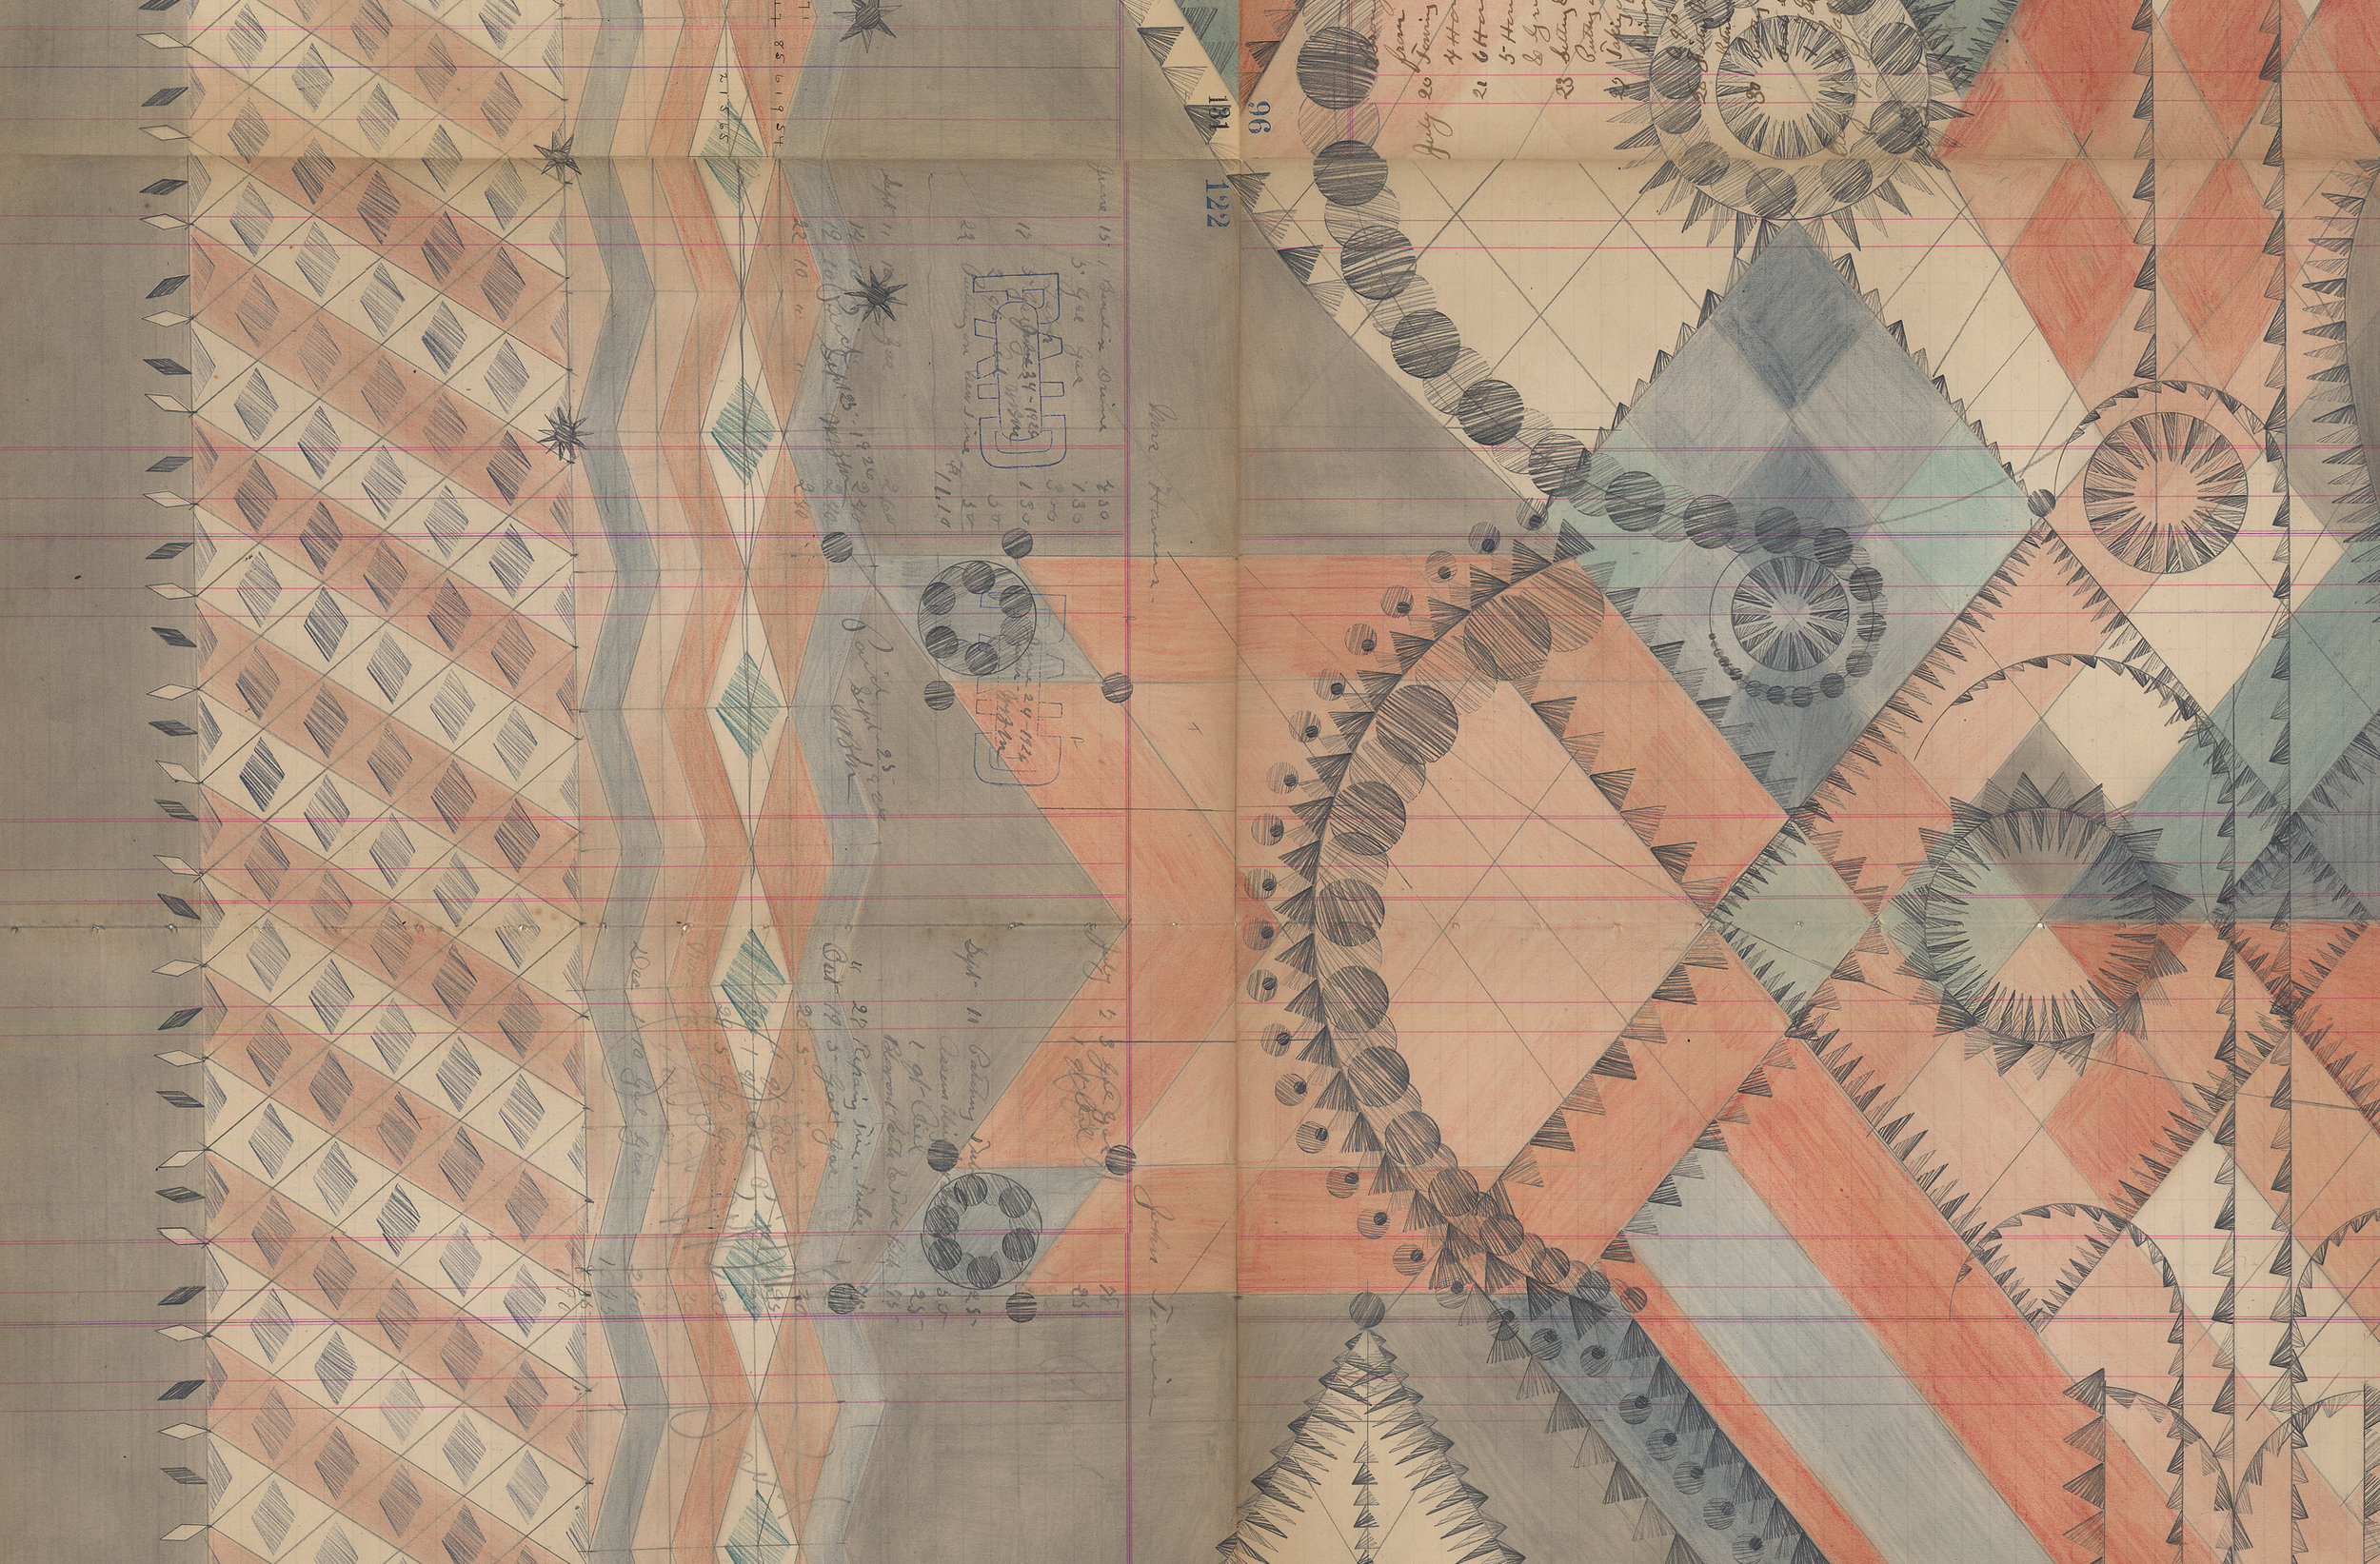 DETAIL of Jester With Crow,Colored Pencil and Graphite on Antique Ledger Book Pages.82.5 x 54